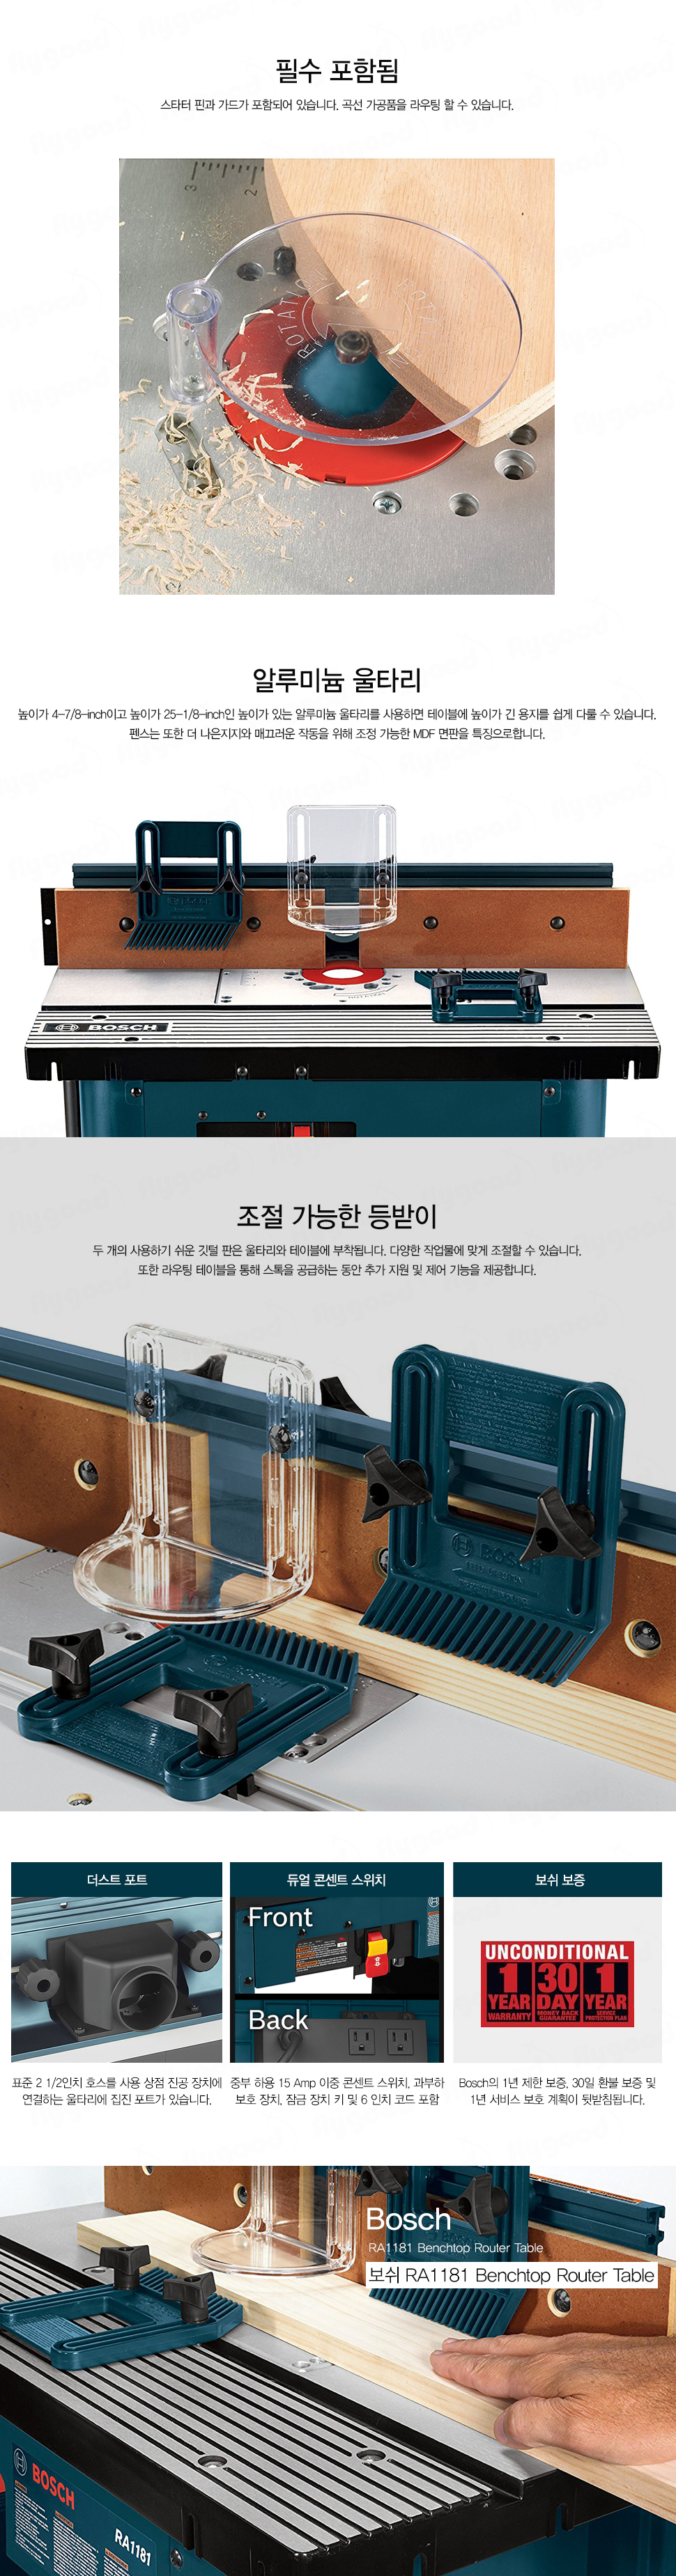 Bosch_RA1181_Benchtop_Router_Table_02.jpg